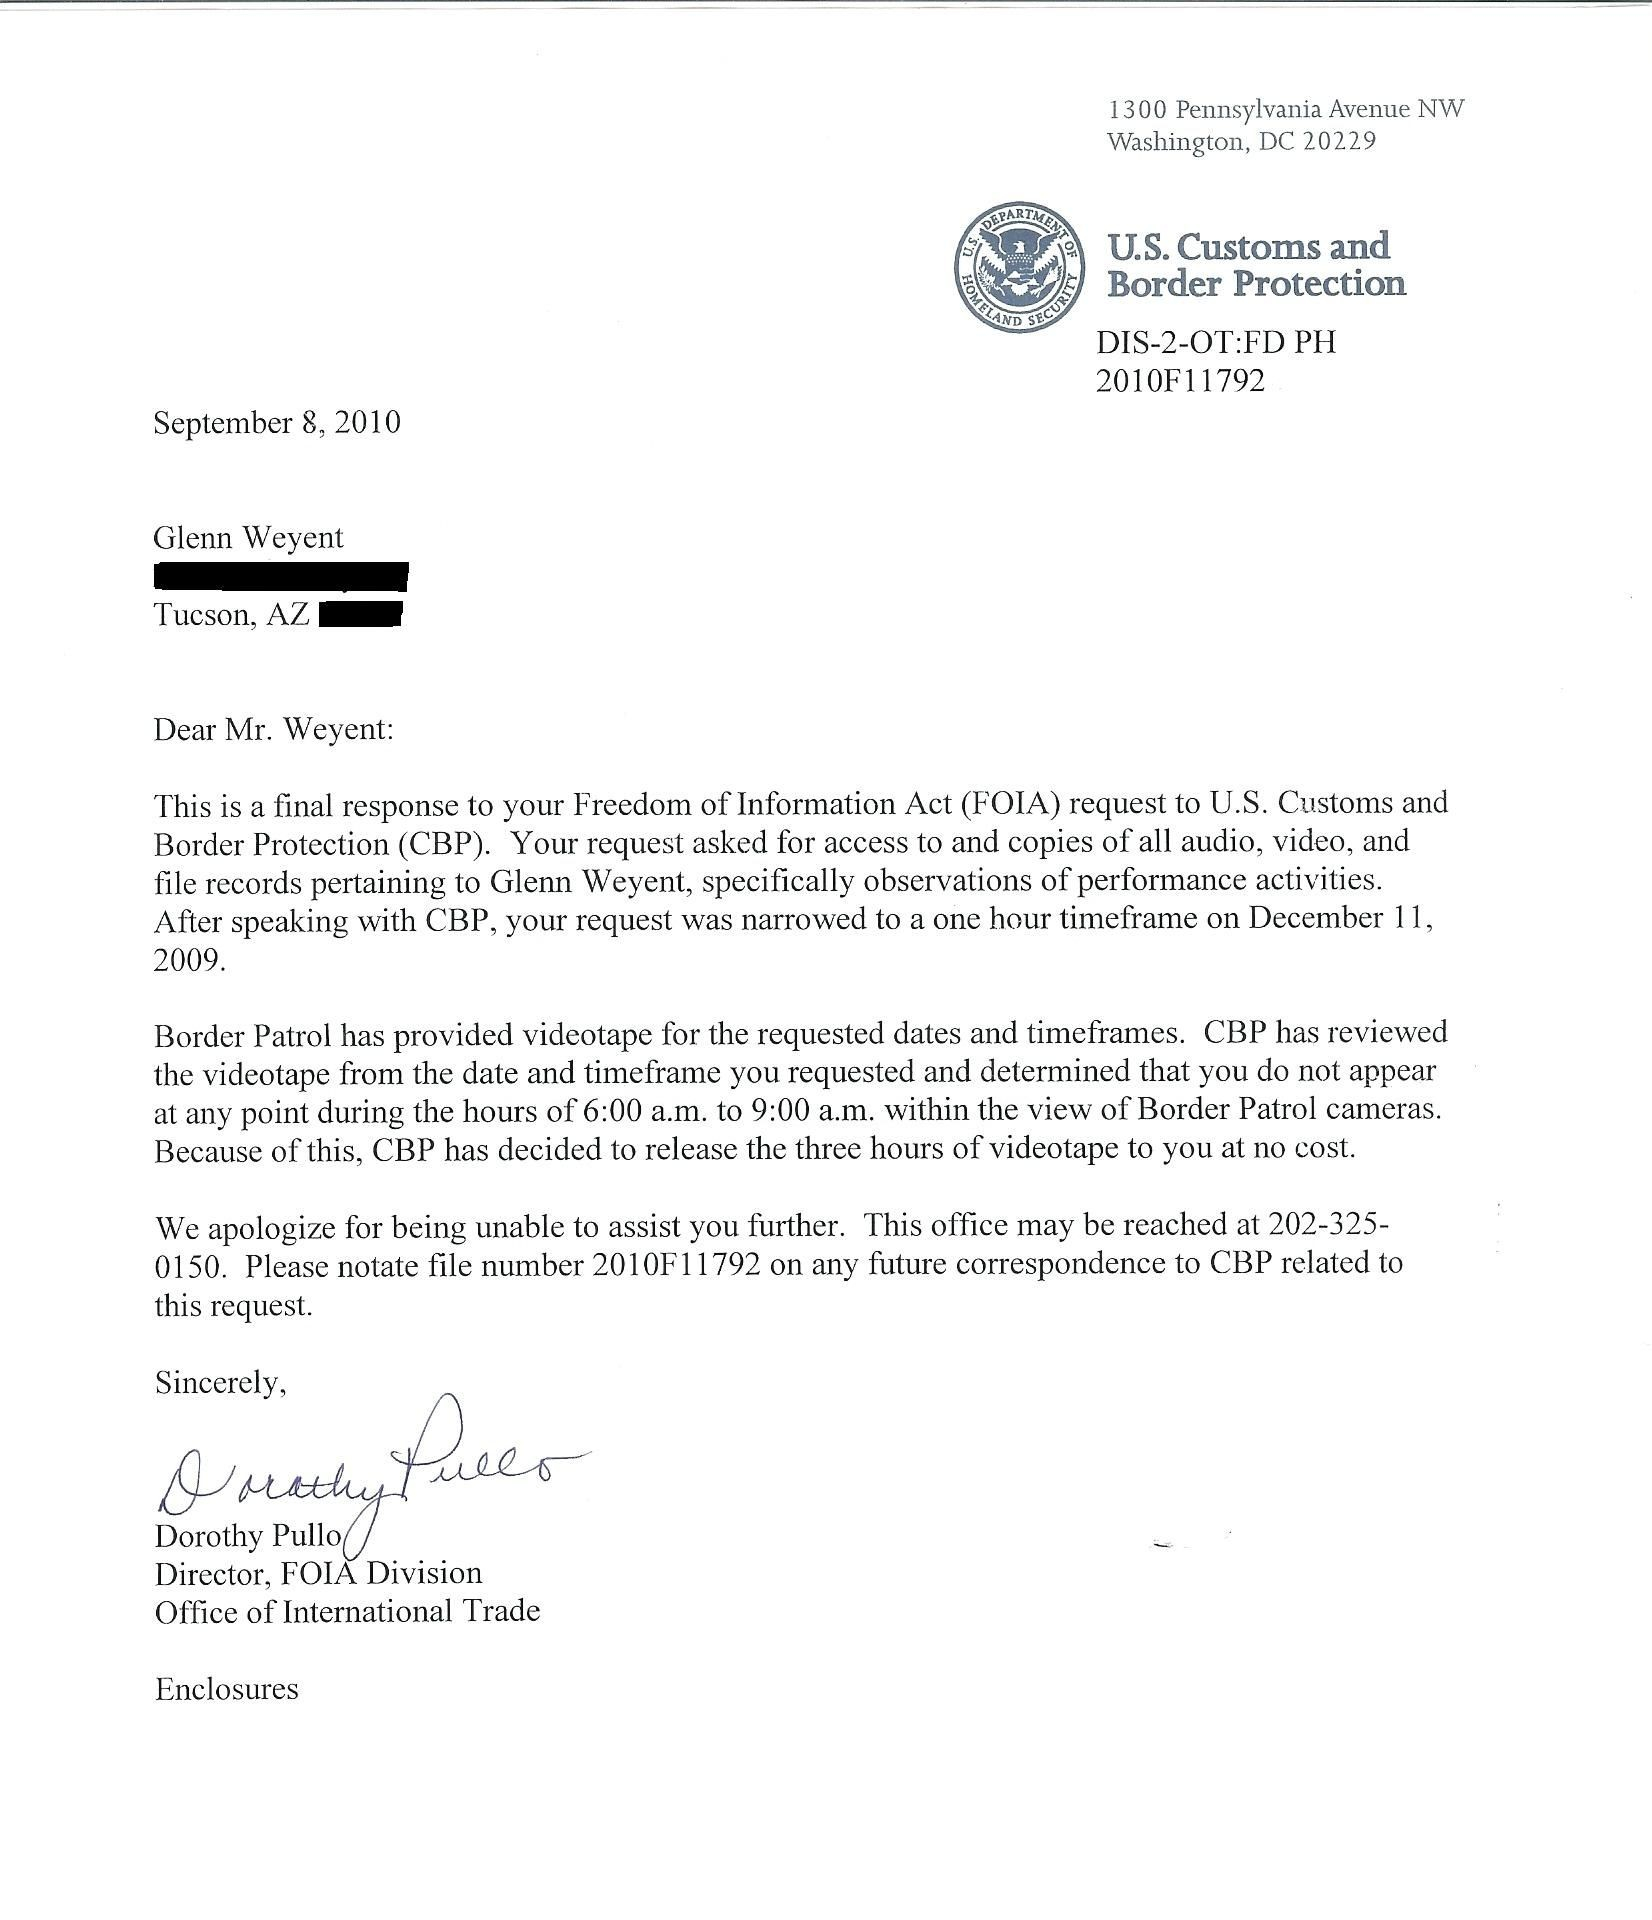 Immigration Reference Letter Template - Free Sample Salary Certificate Letter Fresh Reference Letter format